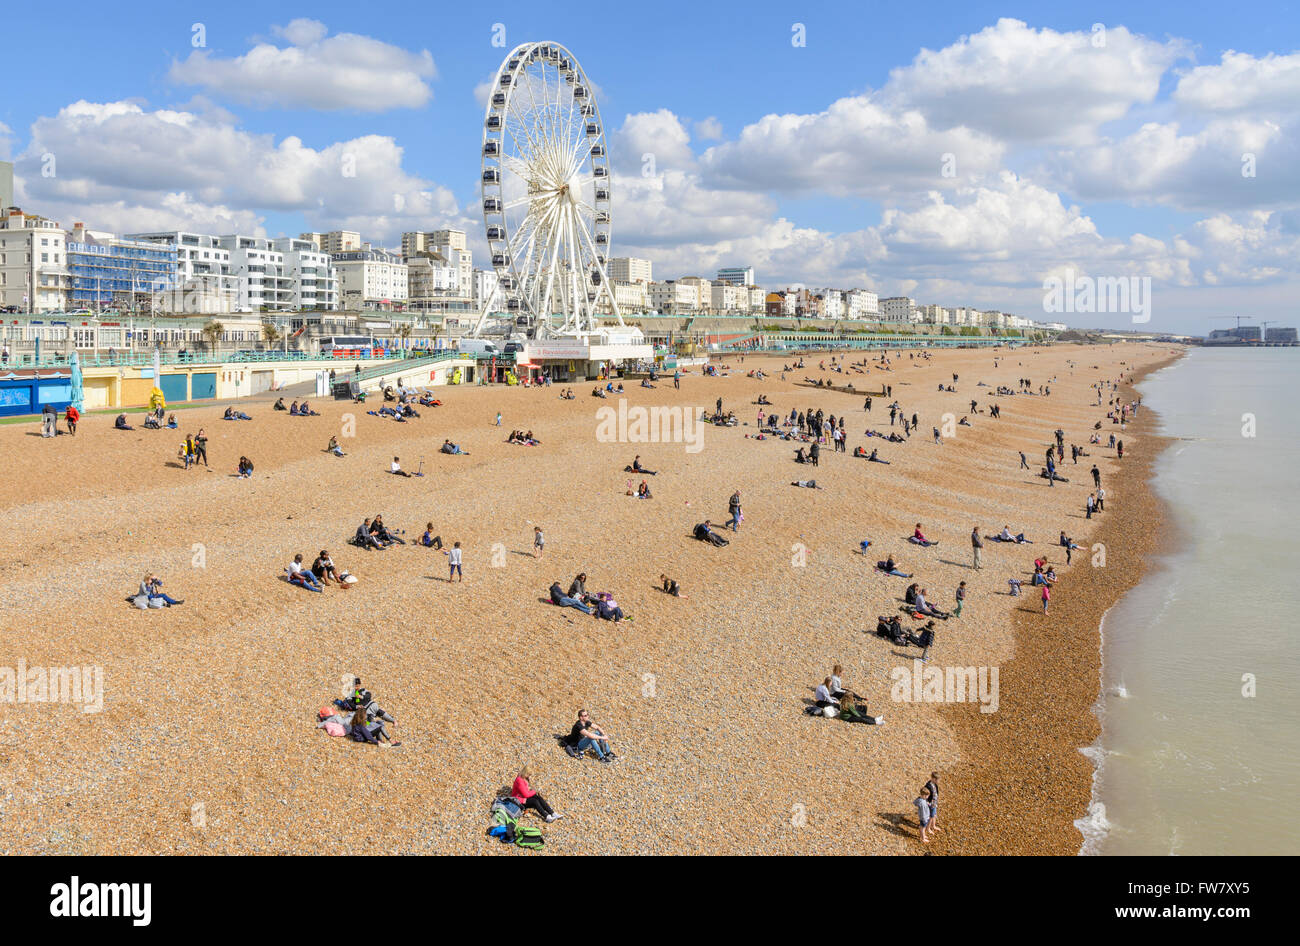 people-on-the-beach-on-a-sunny-day-in-ea